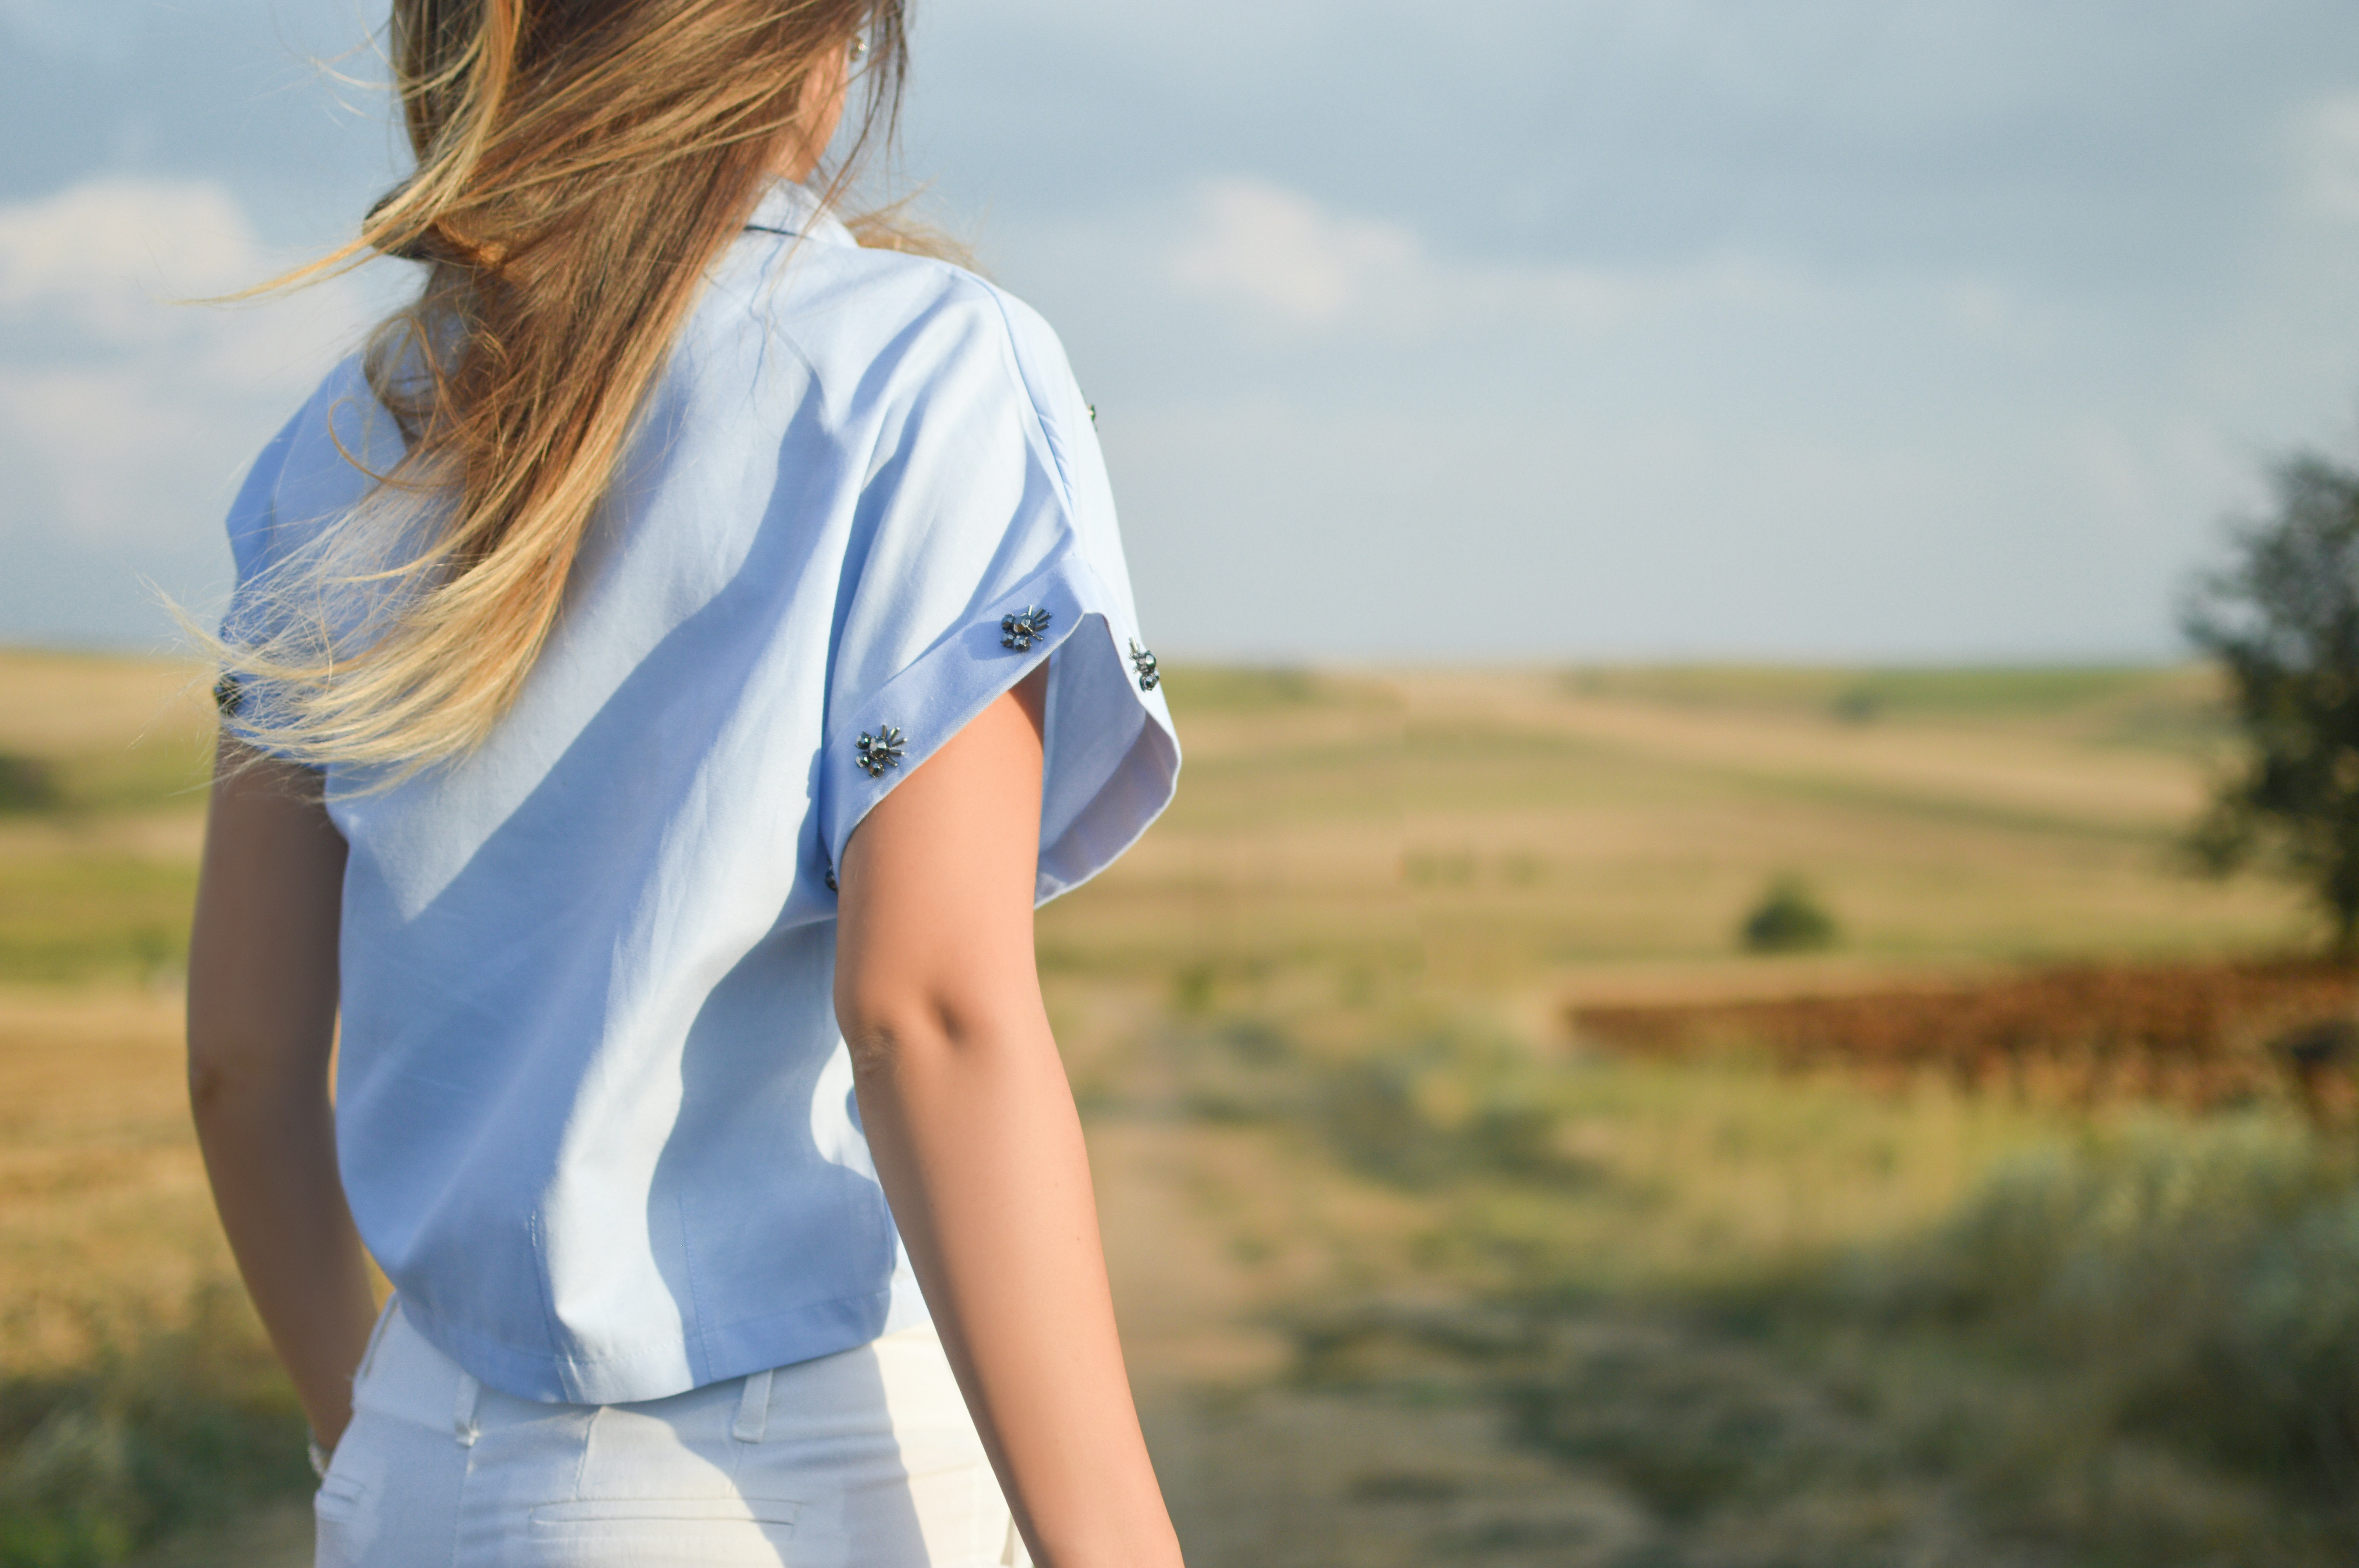 woman wearing white dress shirt standing on green grass field during day time